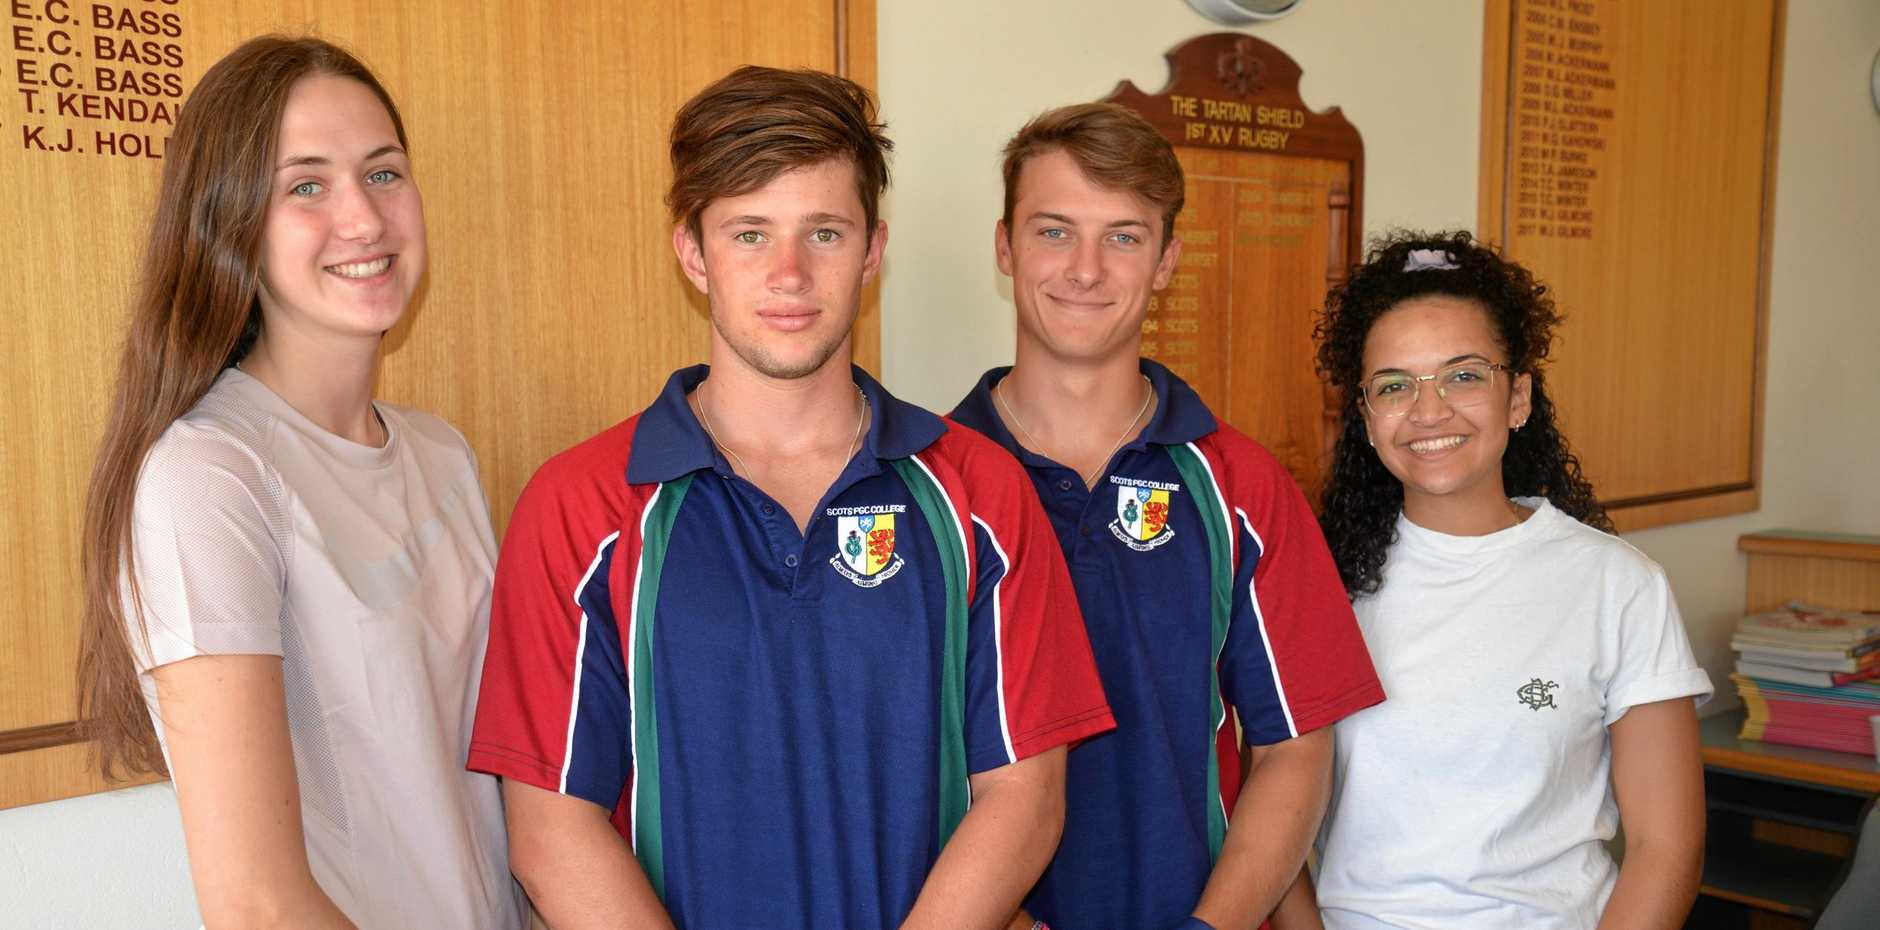 SAFFERS SIGN ON:  Scots PGC South African gap students Scott Stretton and Jeremy Beyleveld, flanked by Sophie Butler and Aly Ferreira, have joined Colts XI in Warwick Cricket. The pair are also keen to play rugby in winter while their female counterparts will join hockey and netball sides this year.